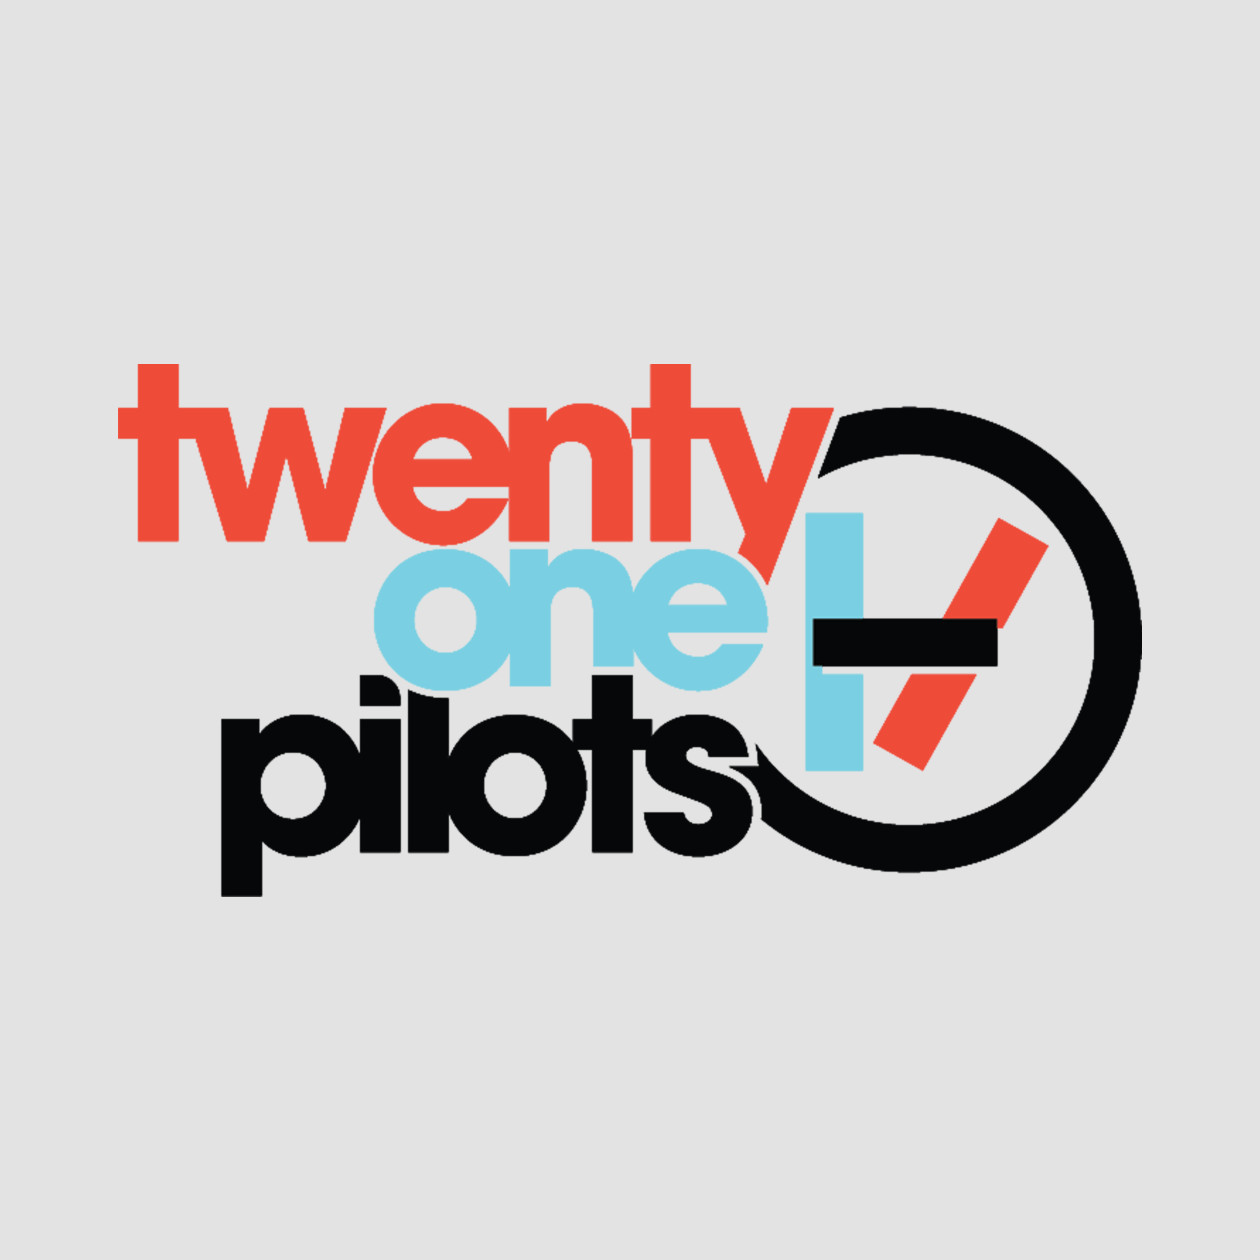 Twenty one pilots logo twenty one pilots logo mug for Twenty one pilots